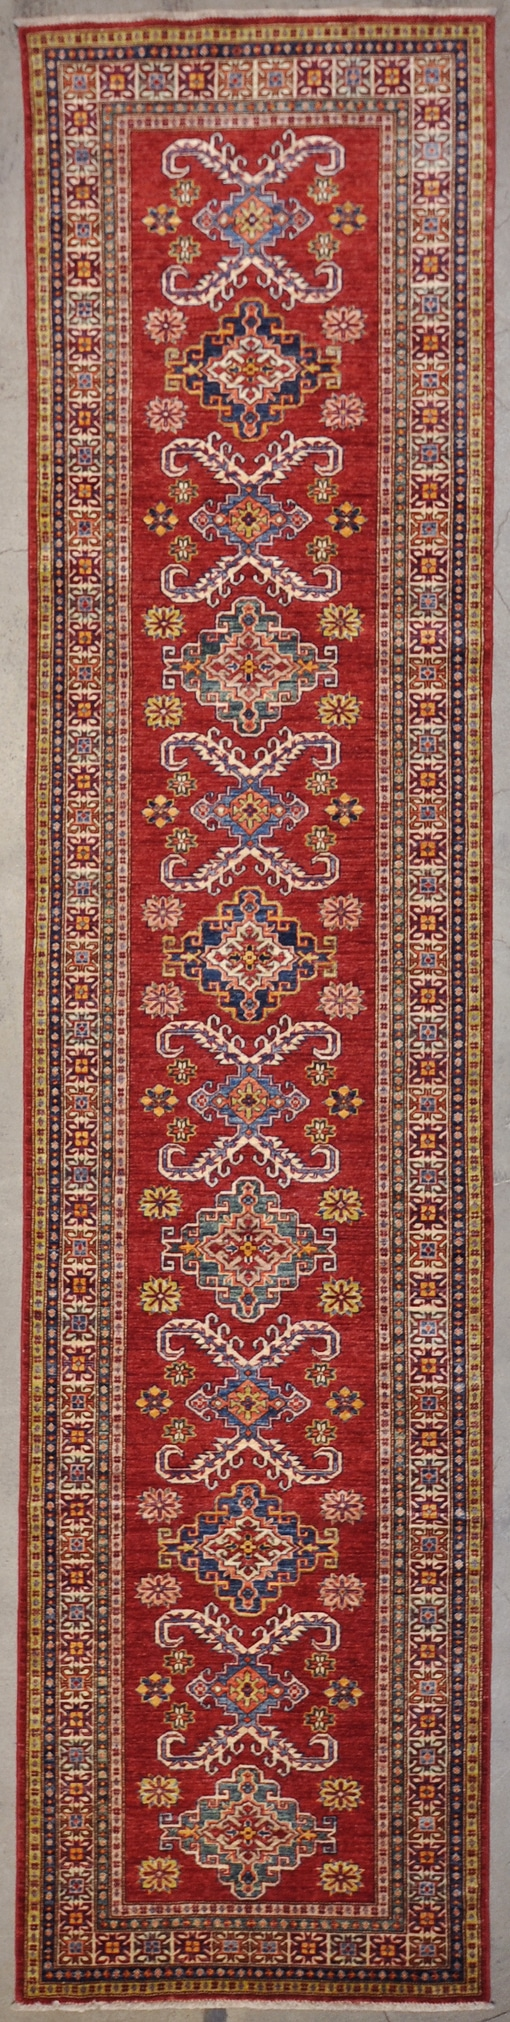 ziegler & co caucasian runner rugs and more oriental carpet 29793-